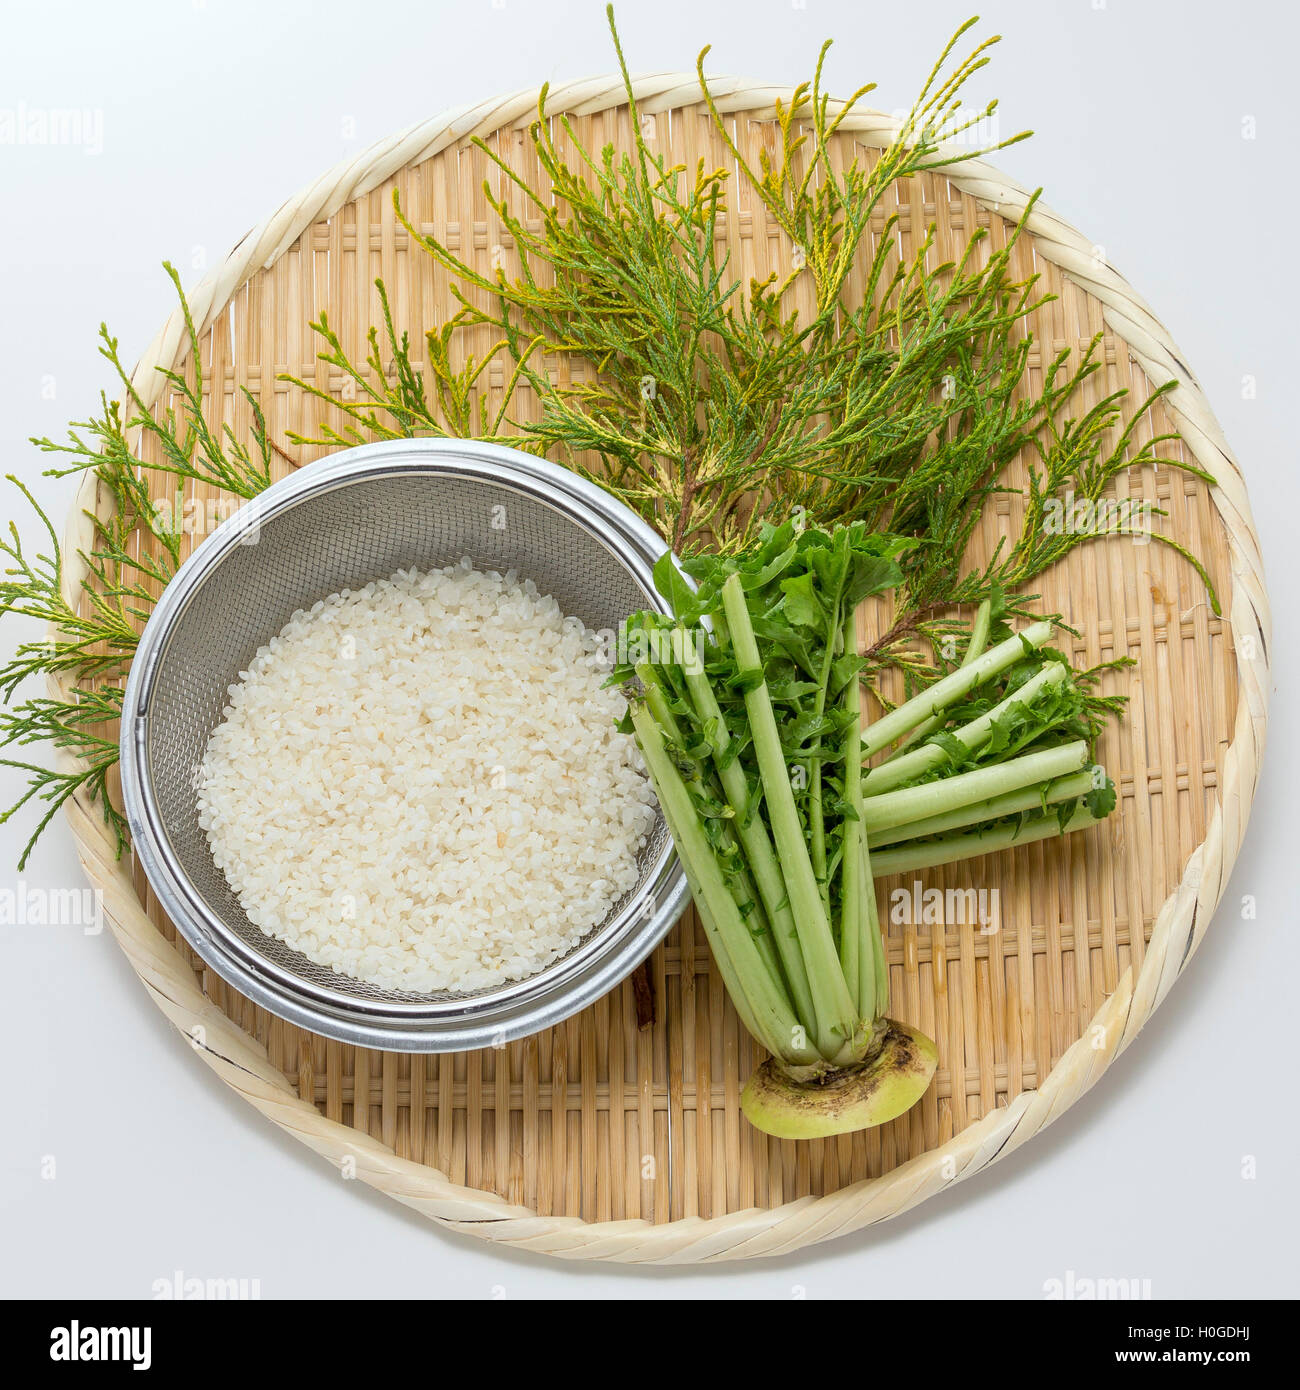 Rice with white radish leaves and herbs on bamboo tray Stock Photo